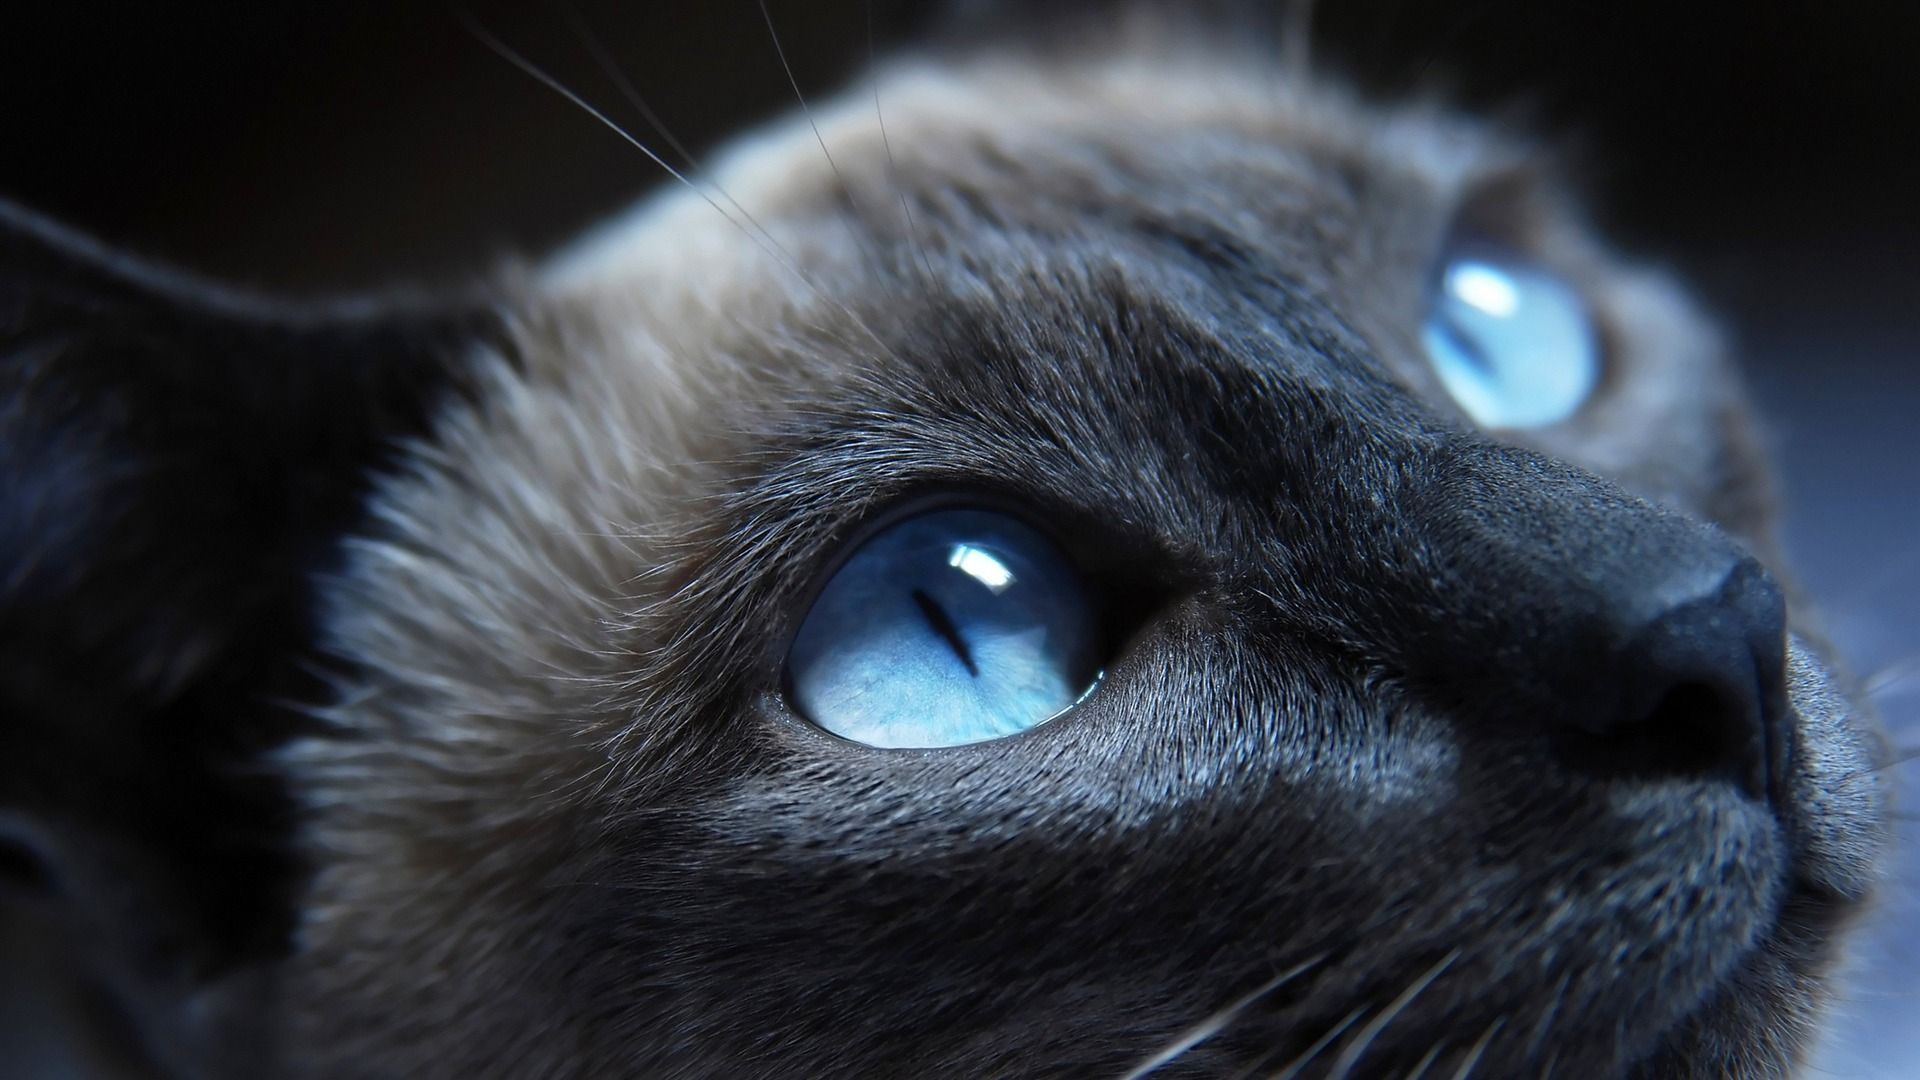 Black Cat With Blue Eyes 01 Cute Little Kitty Cat Living Wallpaper 1920x1080 Wallpaper Download Cat With Blue Eyes Pretty Cats Beautiful Cats